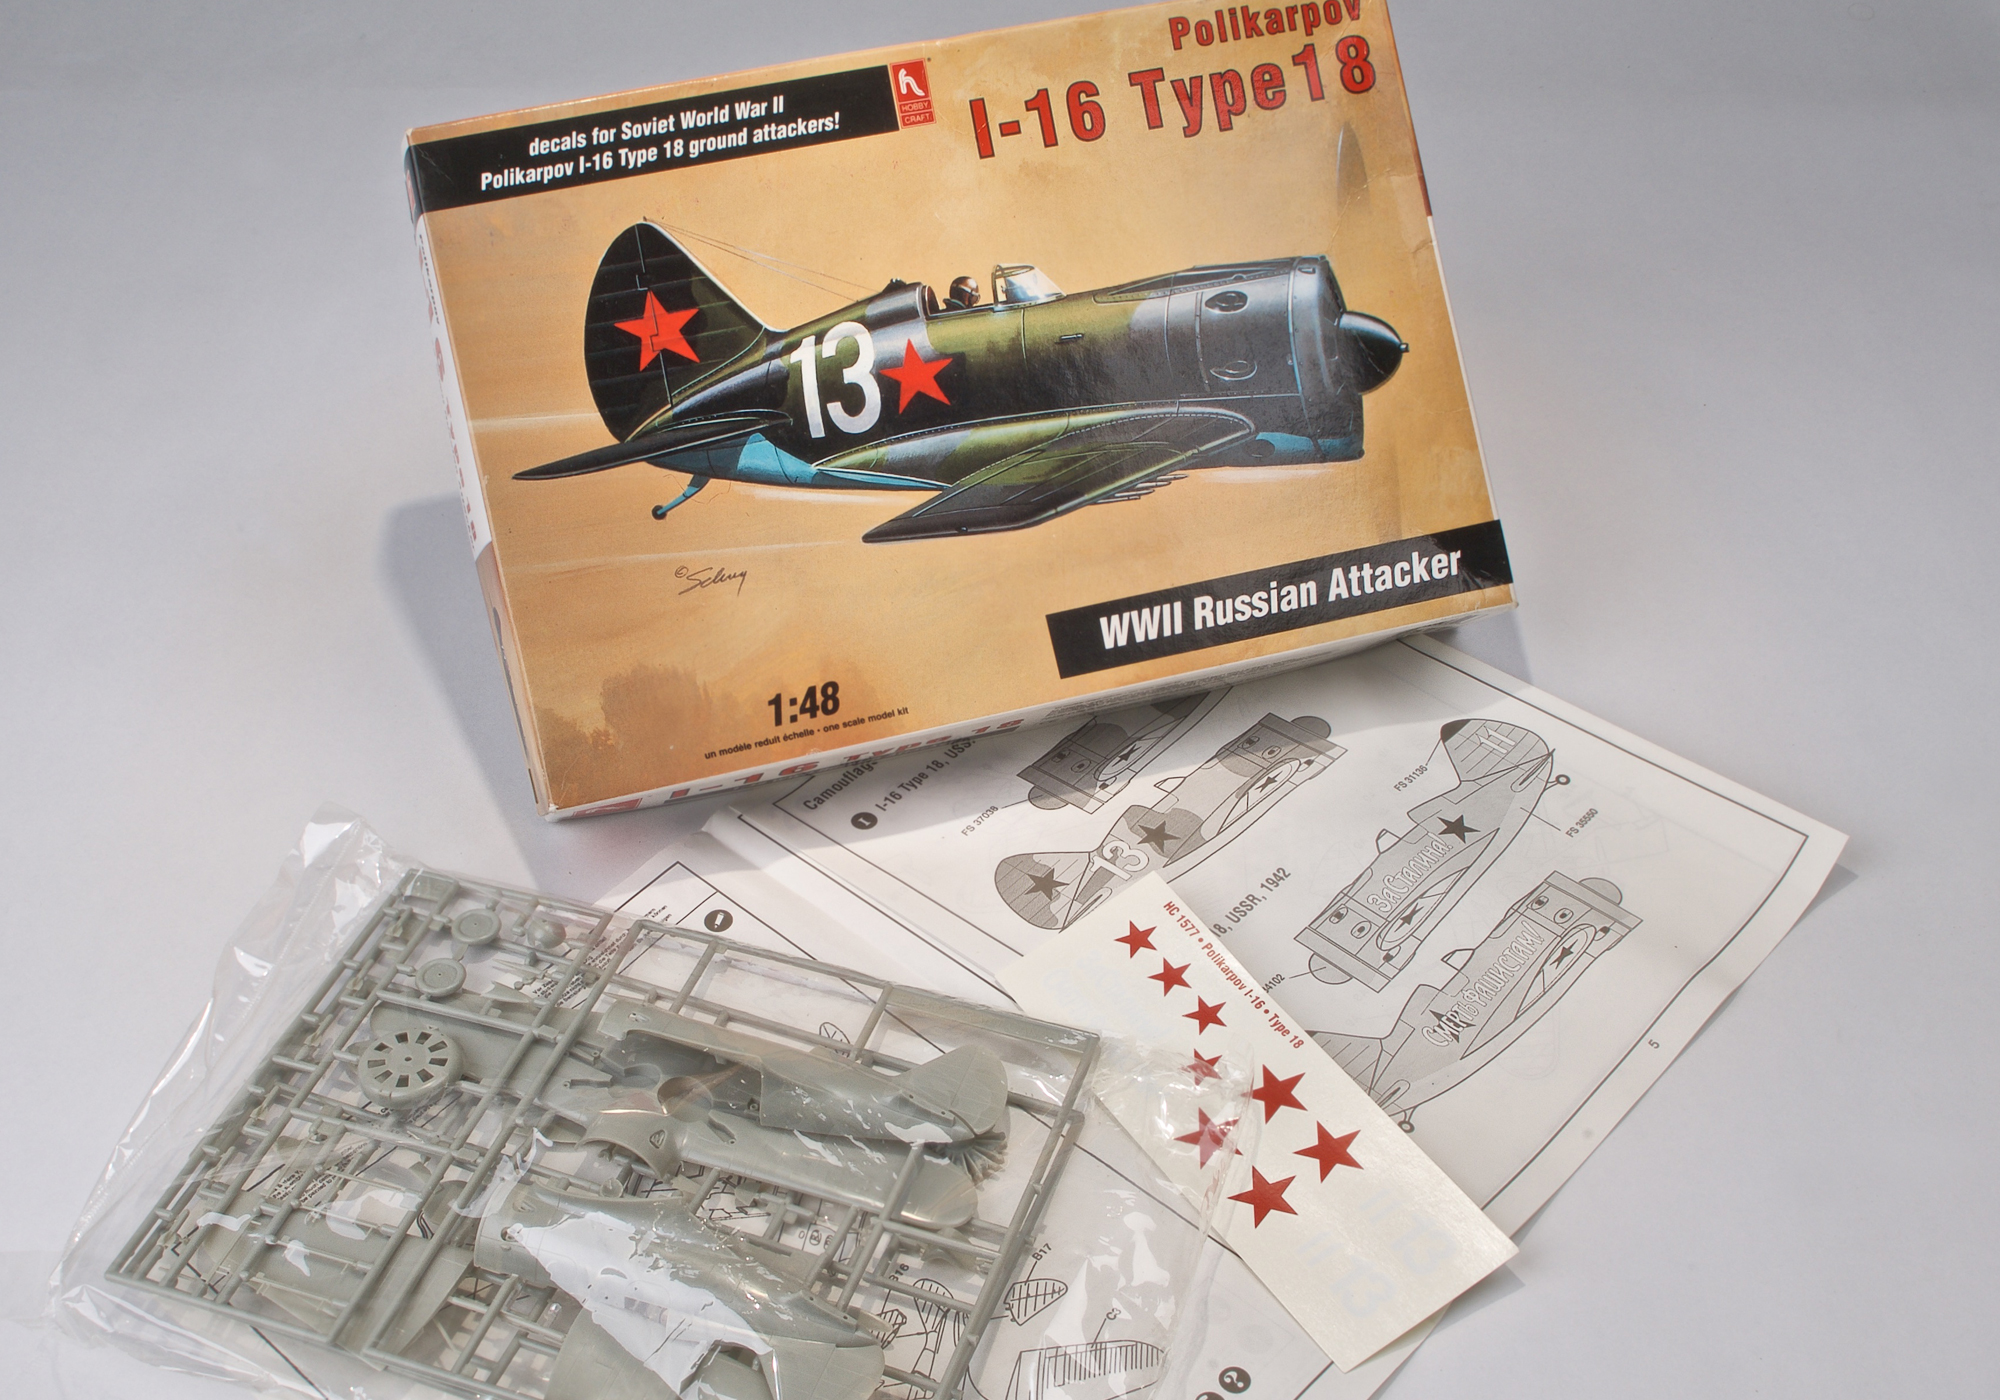 POLIKARPV 1-16 WWII SOVIET ATTACK FIGHTER - 1/48 scale vintage model kit